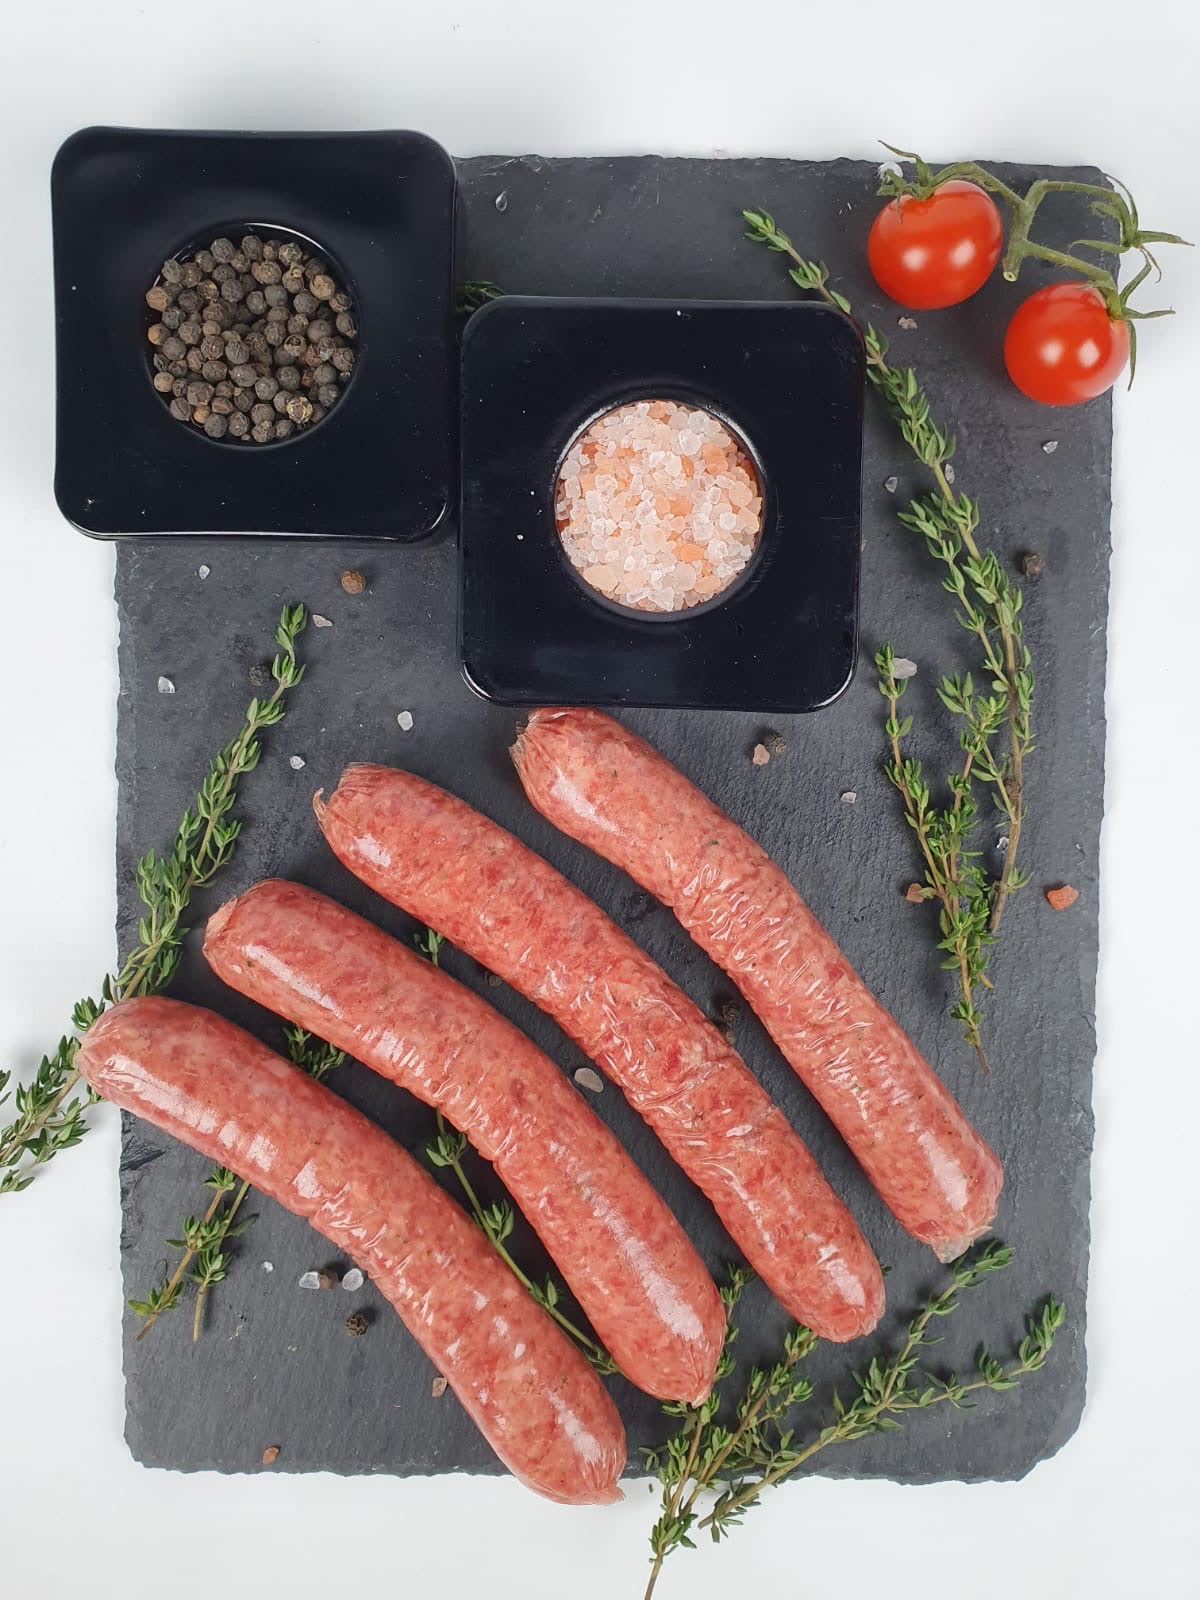 Halal Wagyu Beef Sausages with Sea Salt/Sage and Pepper (450g-500g)